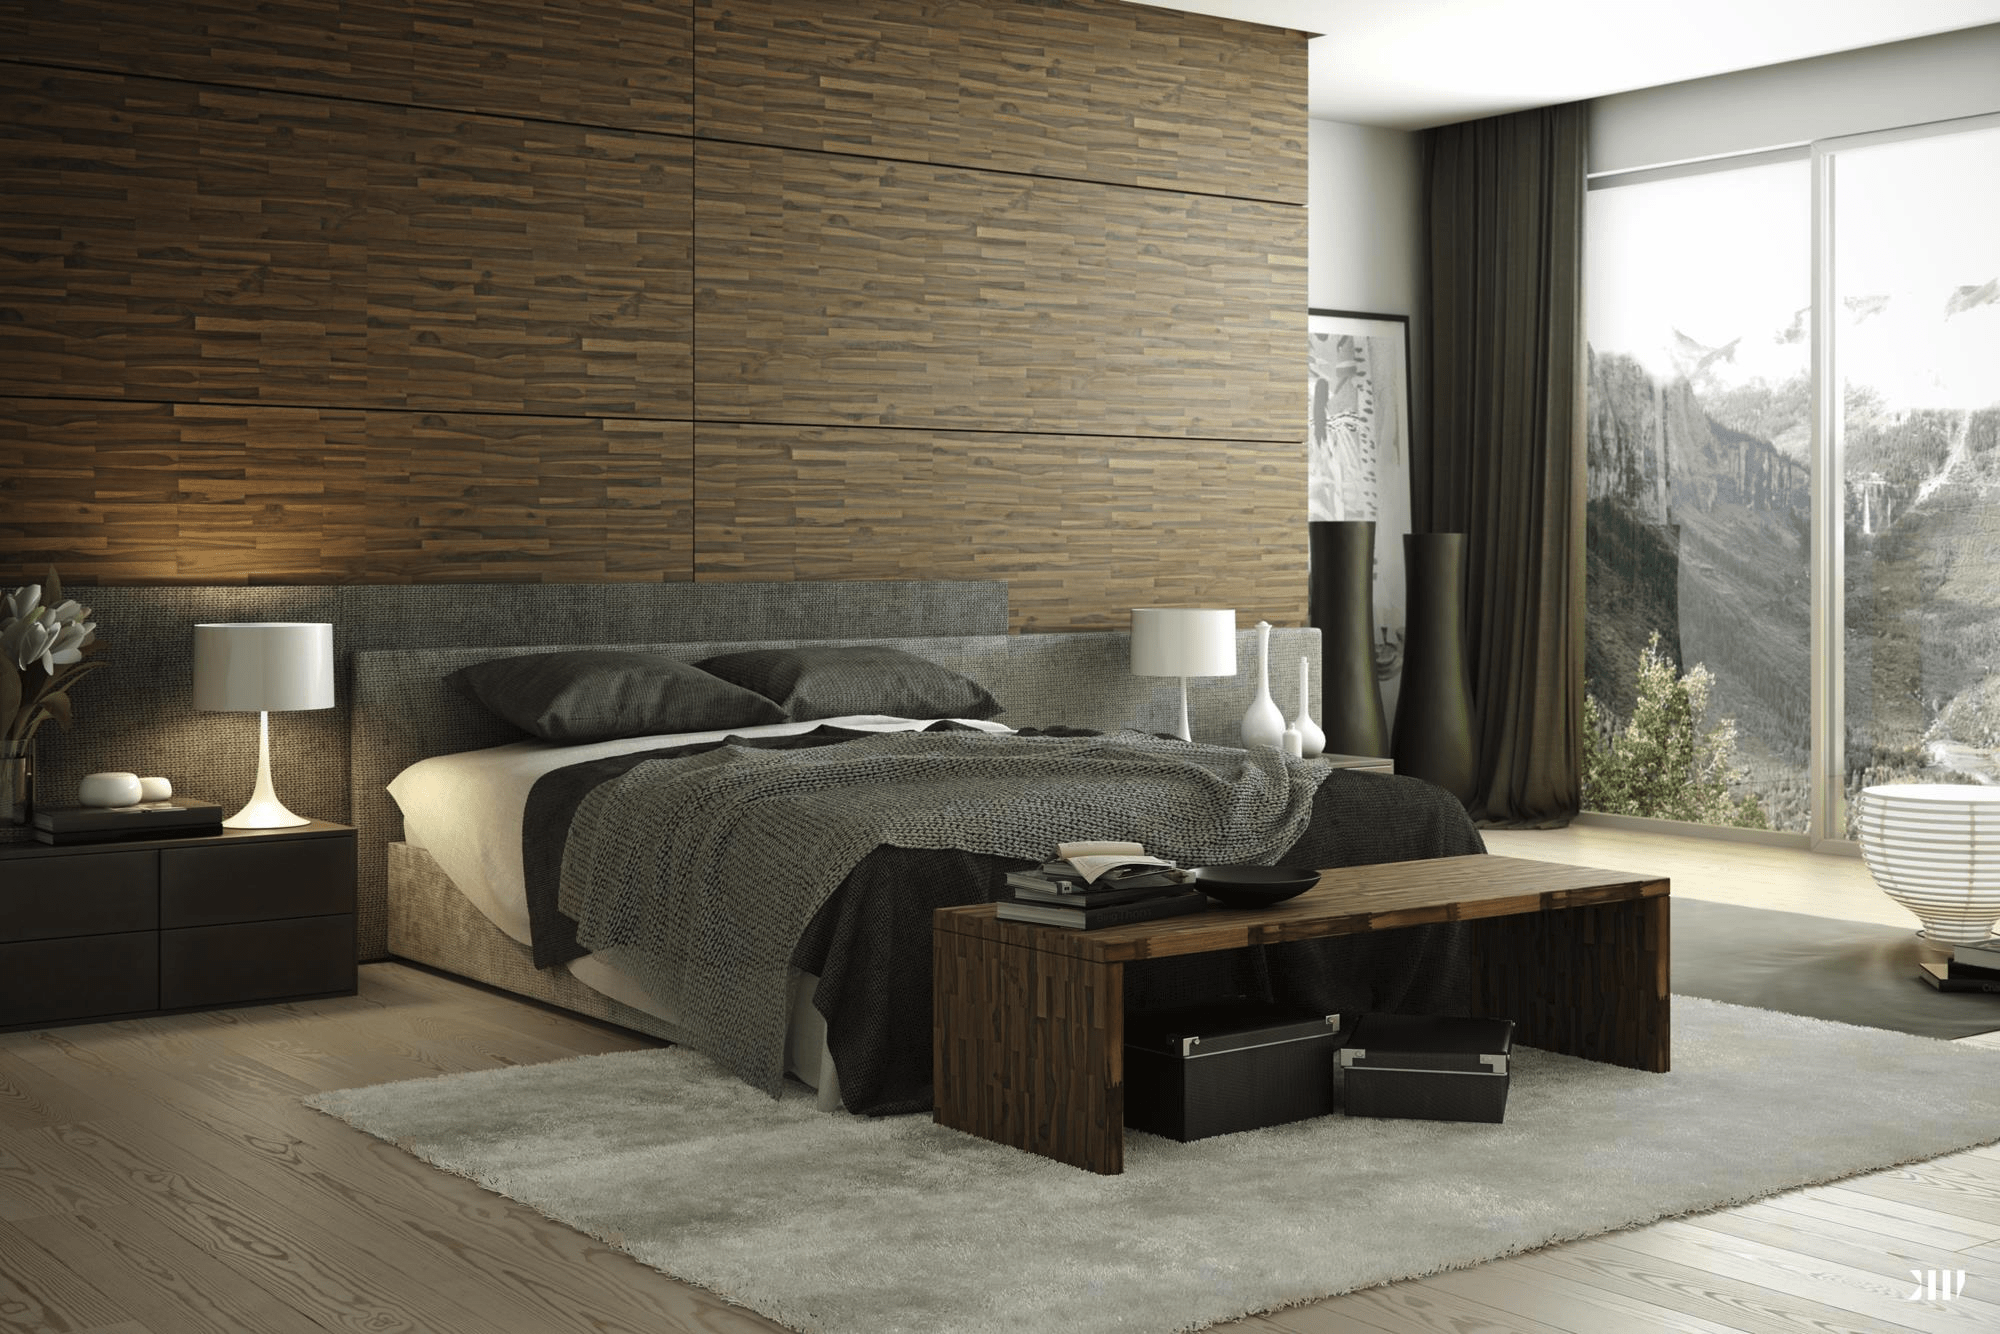 Bedroom Pics Beautiful Bedrooms Perfect For Lounging All Day